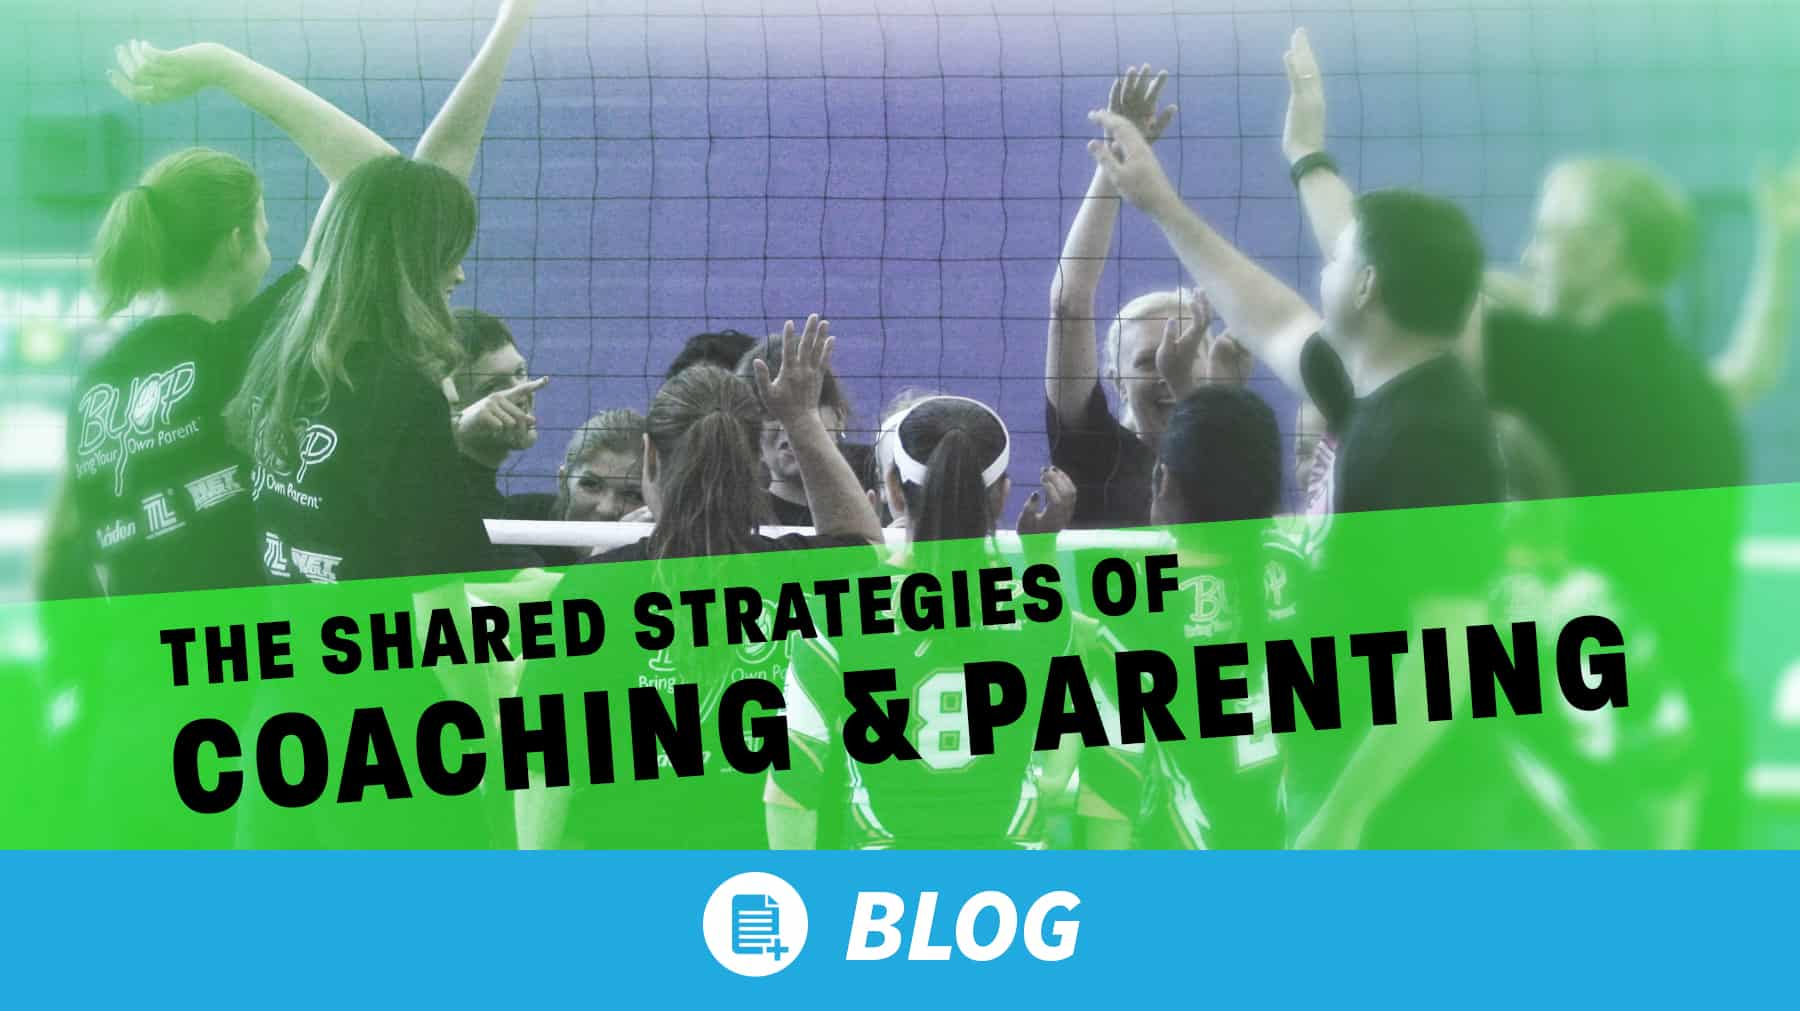 The shared strategies of coaching and parenting